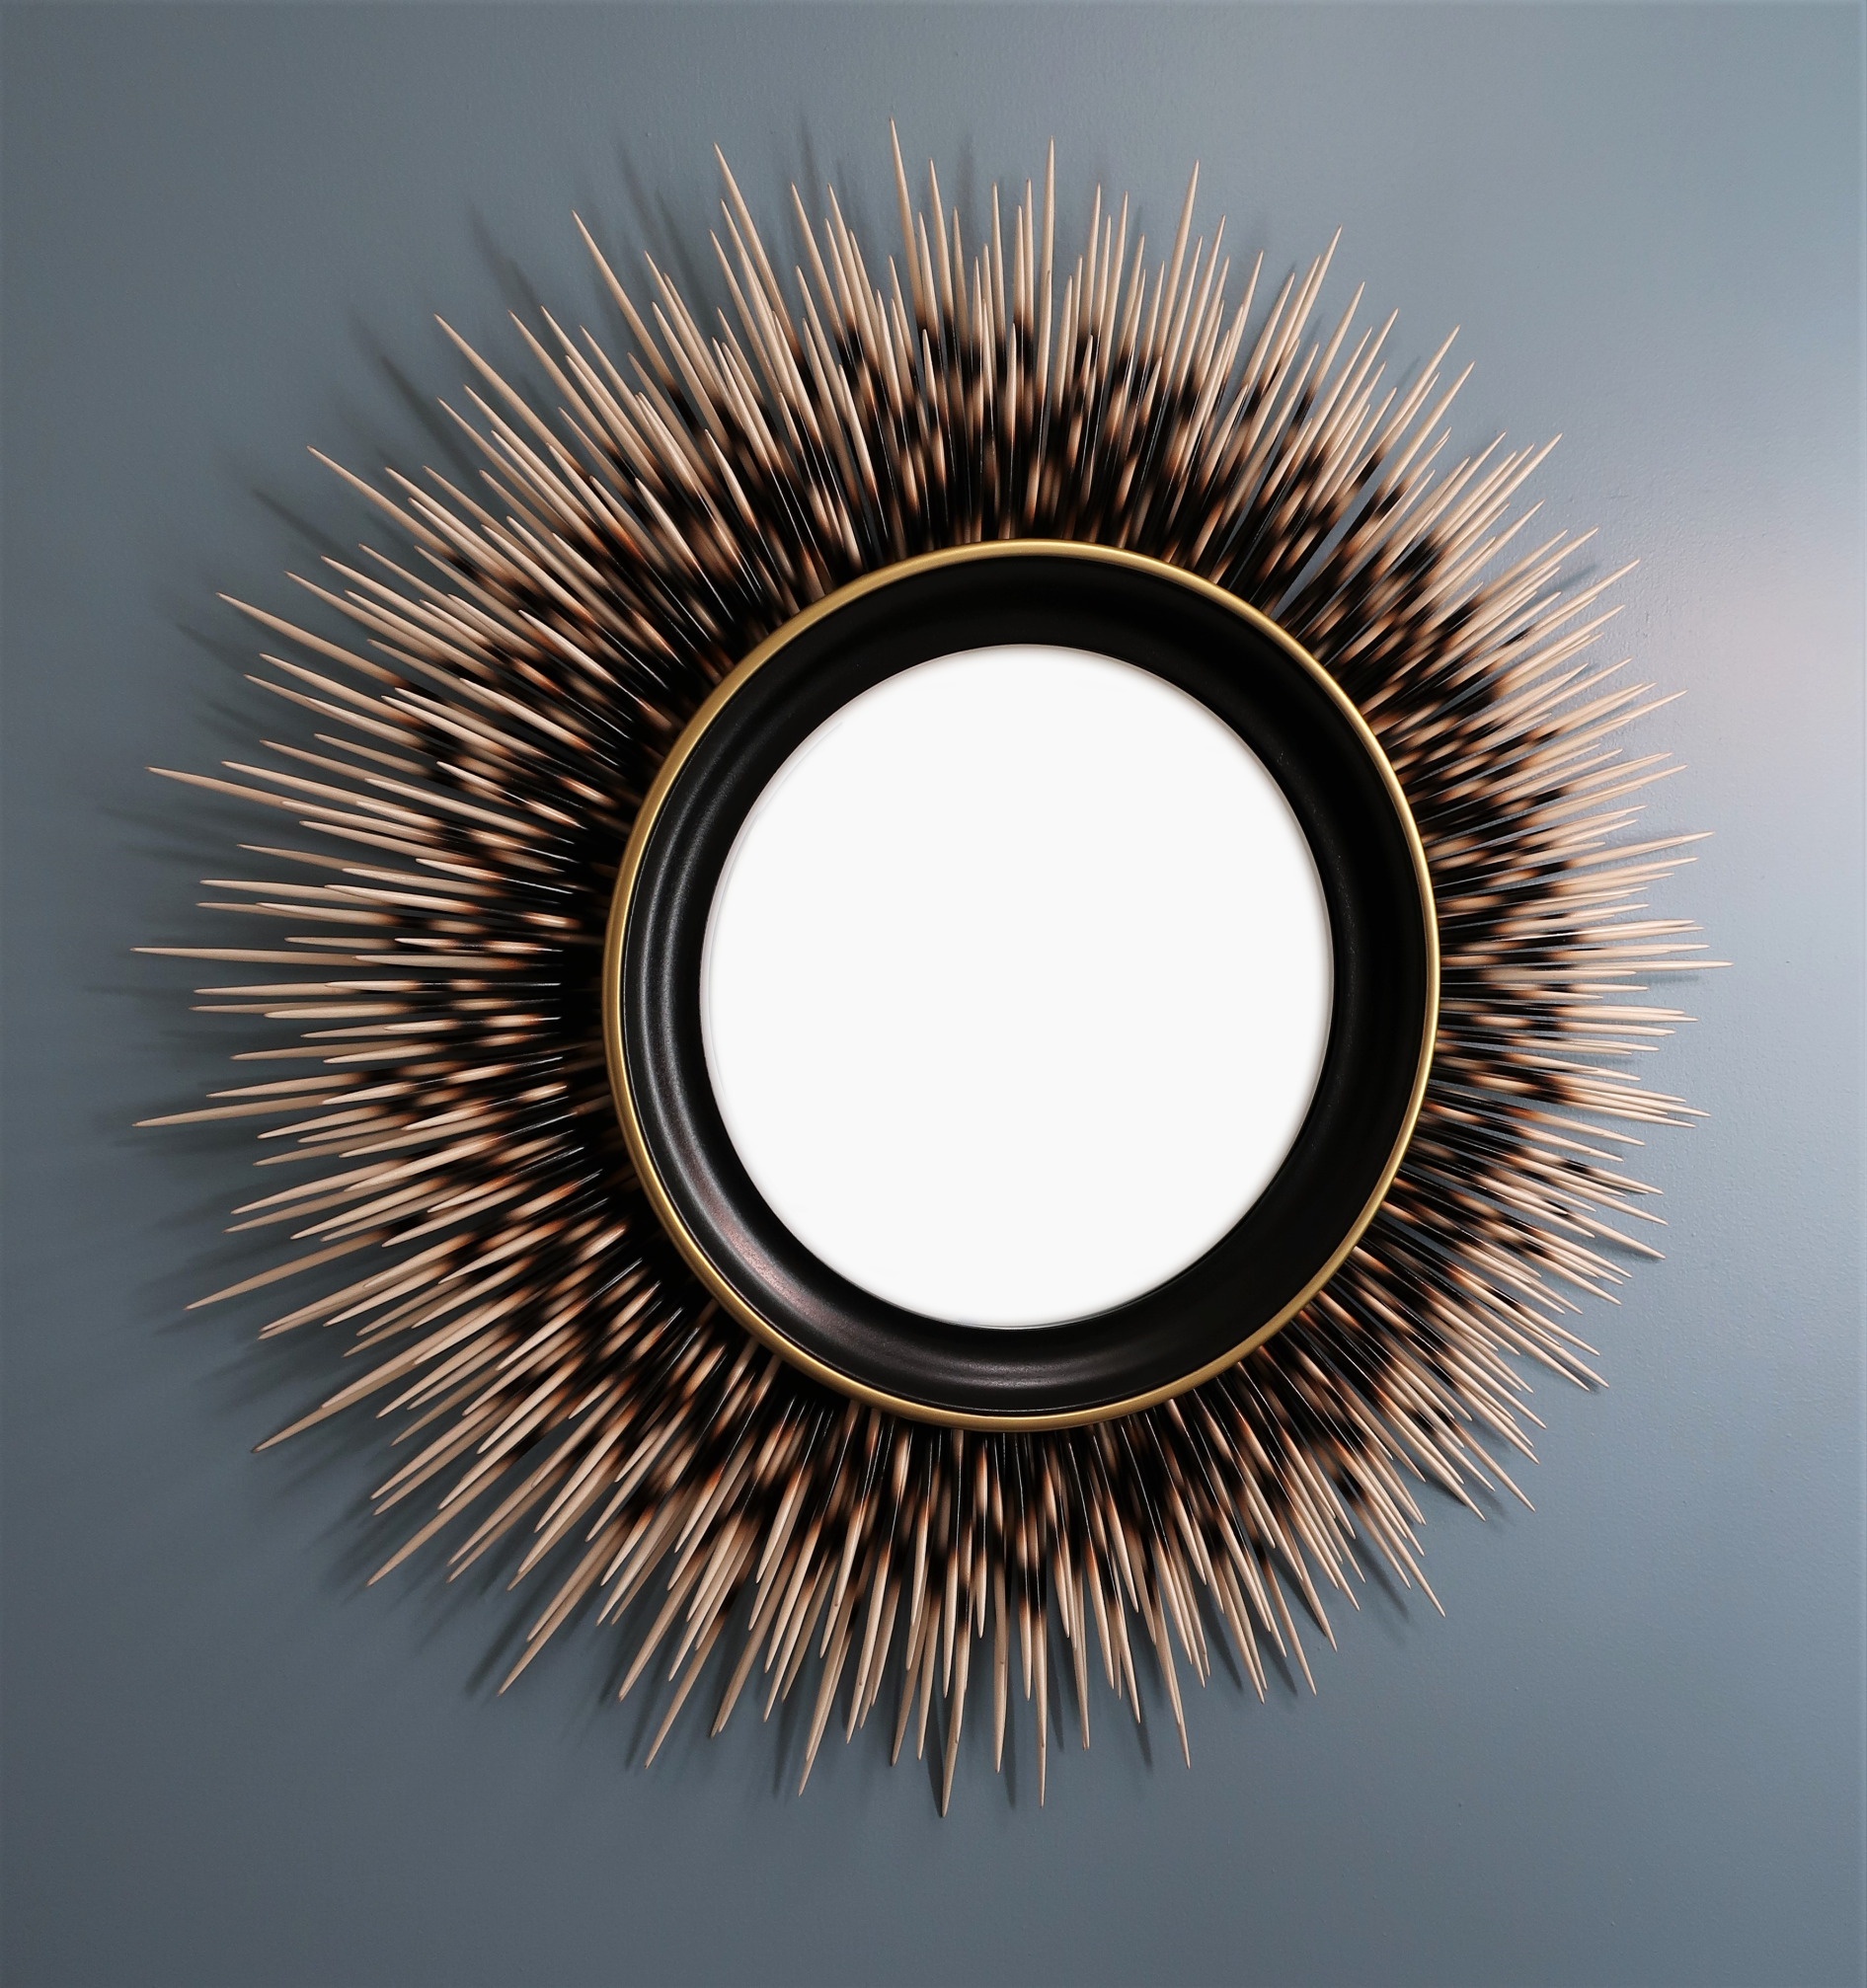 "31"" ivory-tip porcupine quill mirror with black frame and gold accent border"